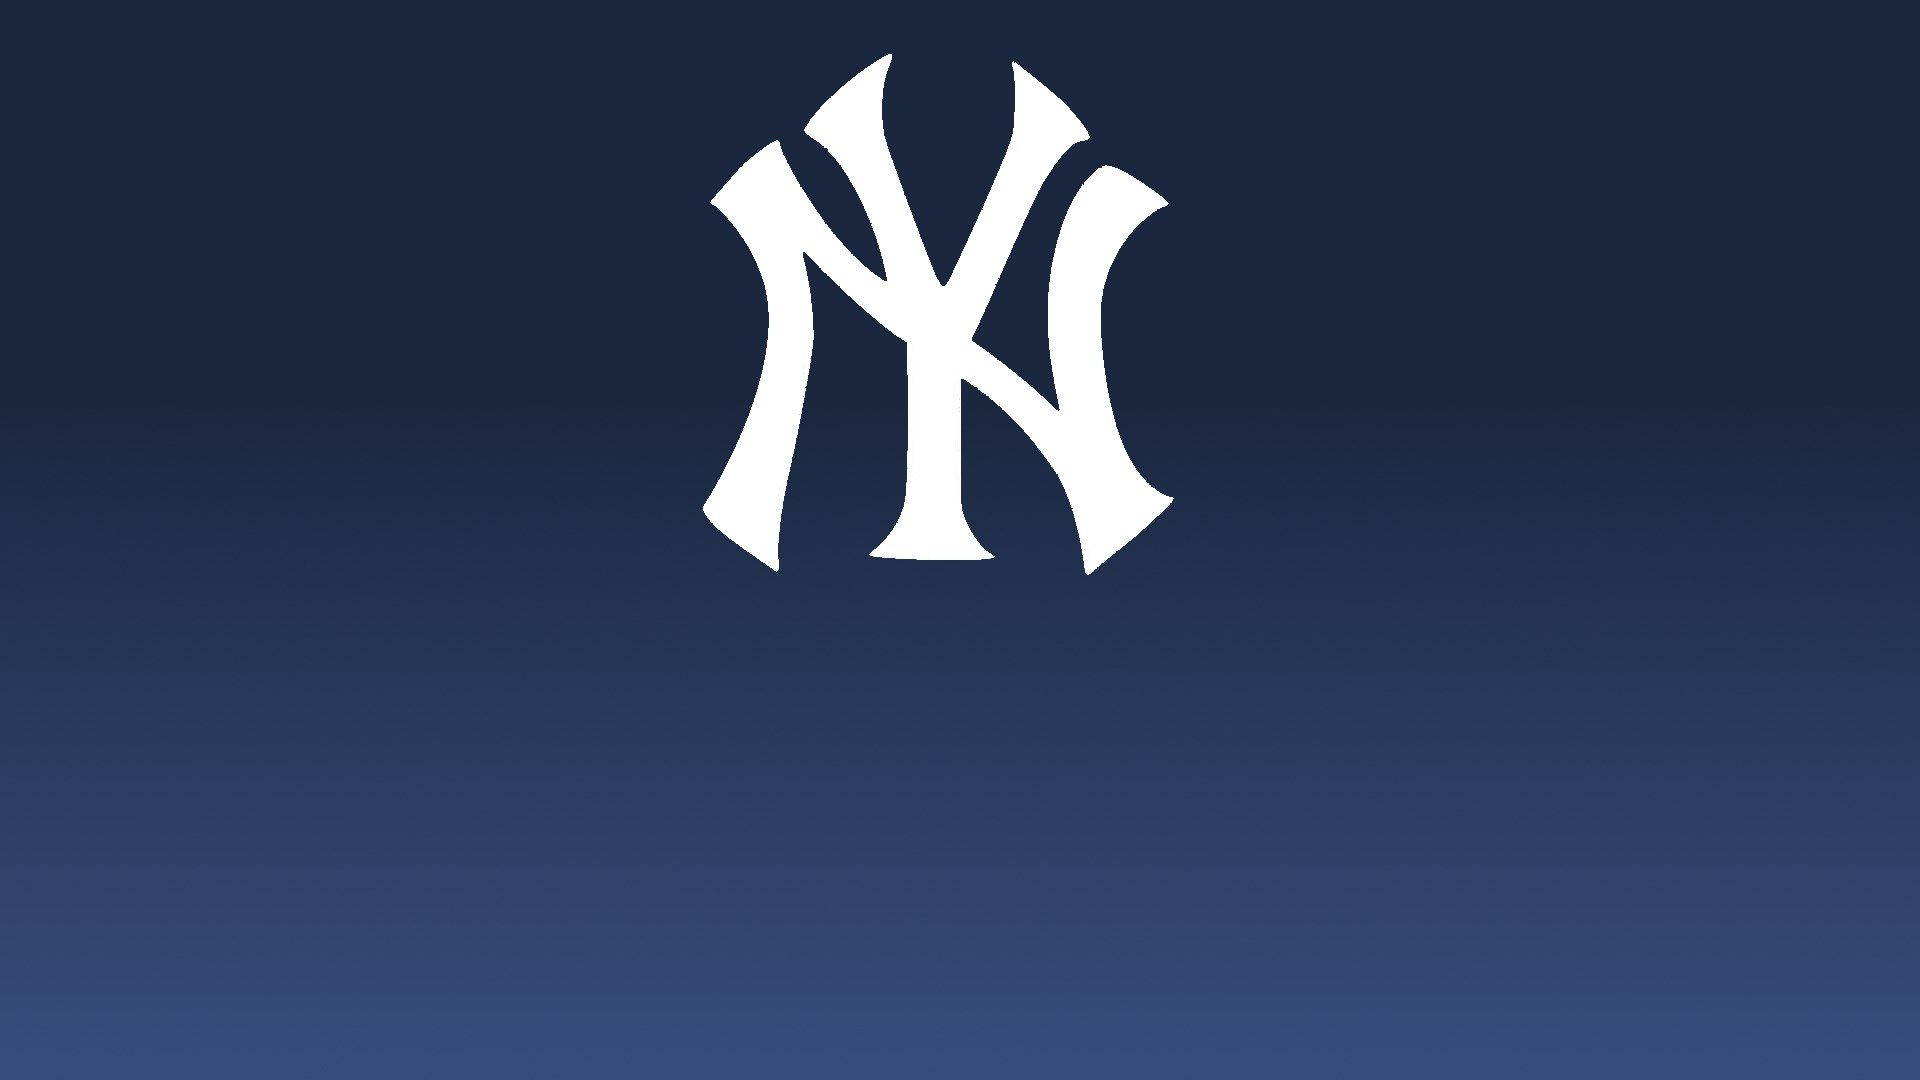 10294 Yankees Category Amazing Yankees Picture Yankees Pictures New York Yankees Yankees